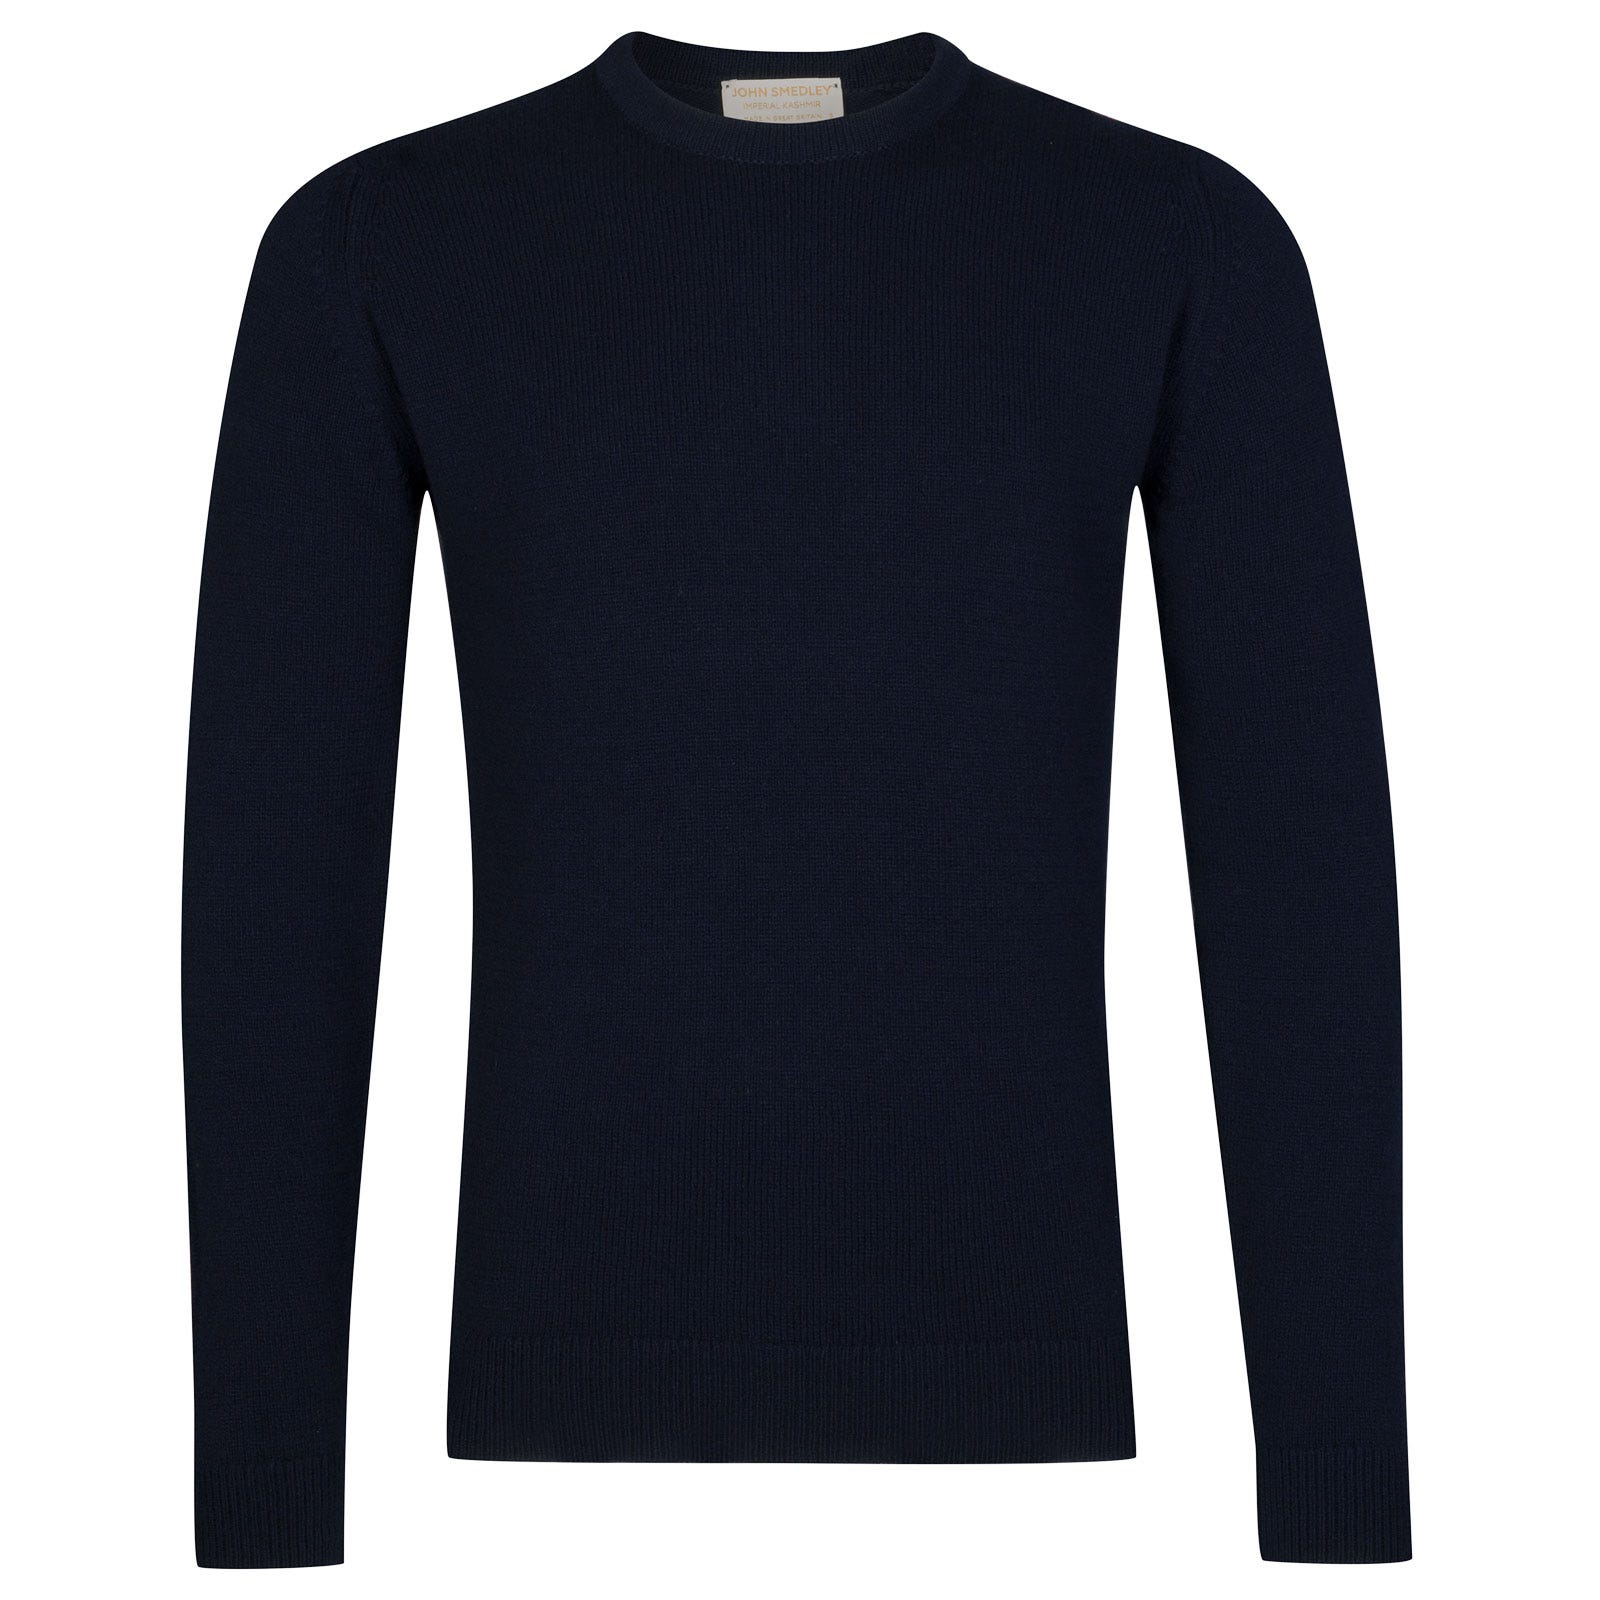 John Smedley Crowford Wool and Cashmere Pullover in Midnight-S